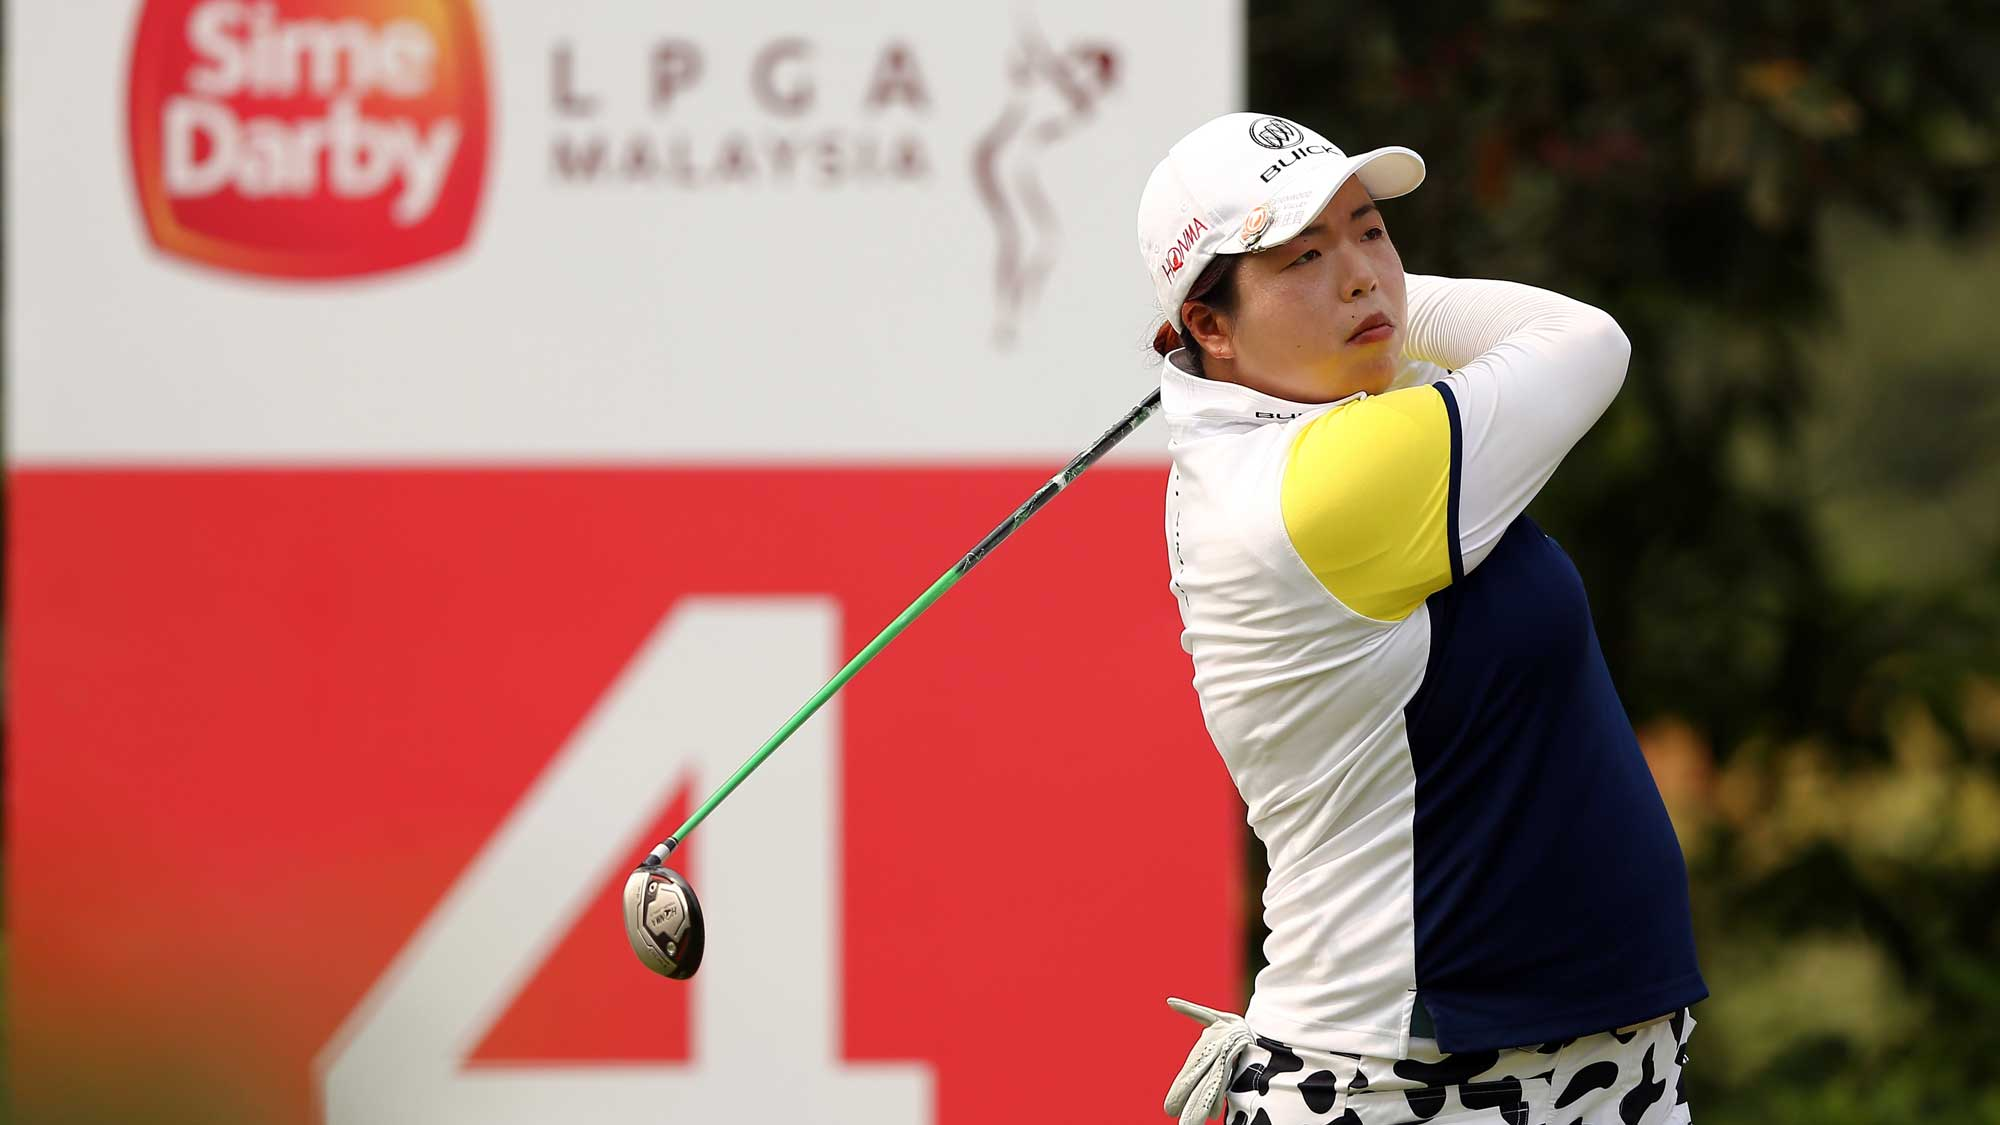 Shanshan Feng of China watches her tee shot on the 4th hole during round three of the Sime Darby LPGA Tour at Kuala Lumpur Golf & Country Club